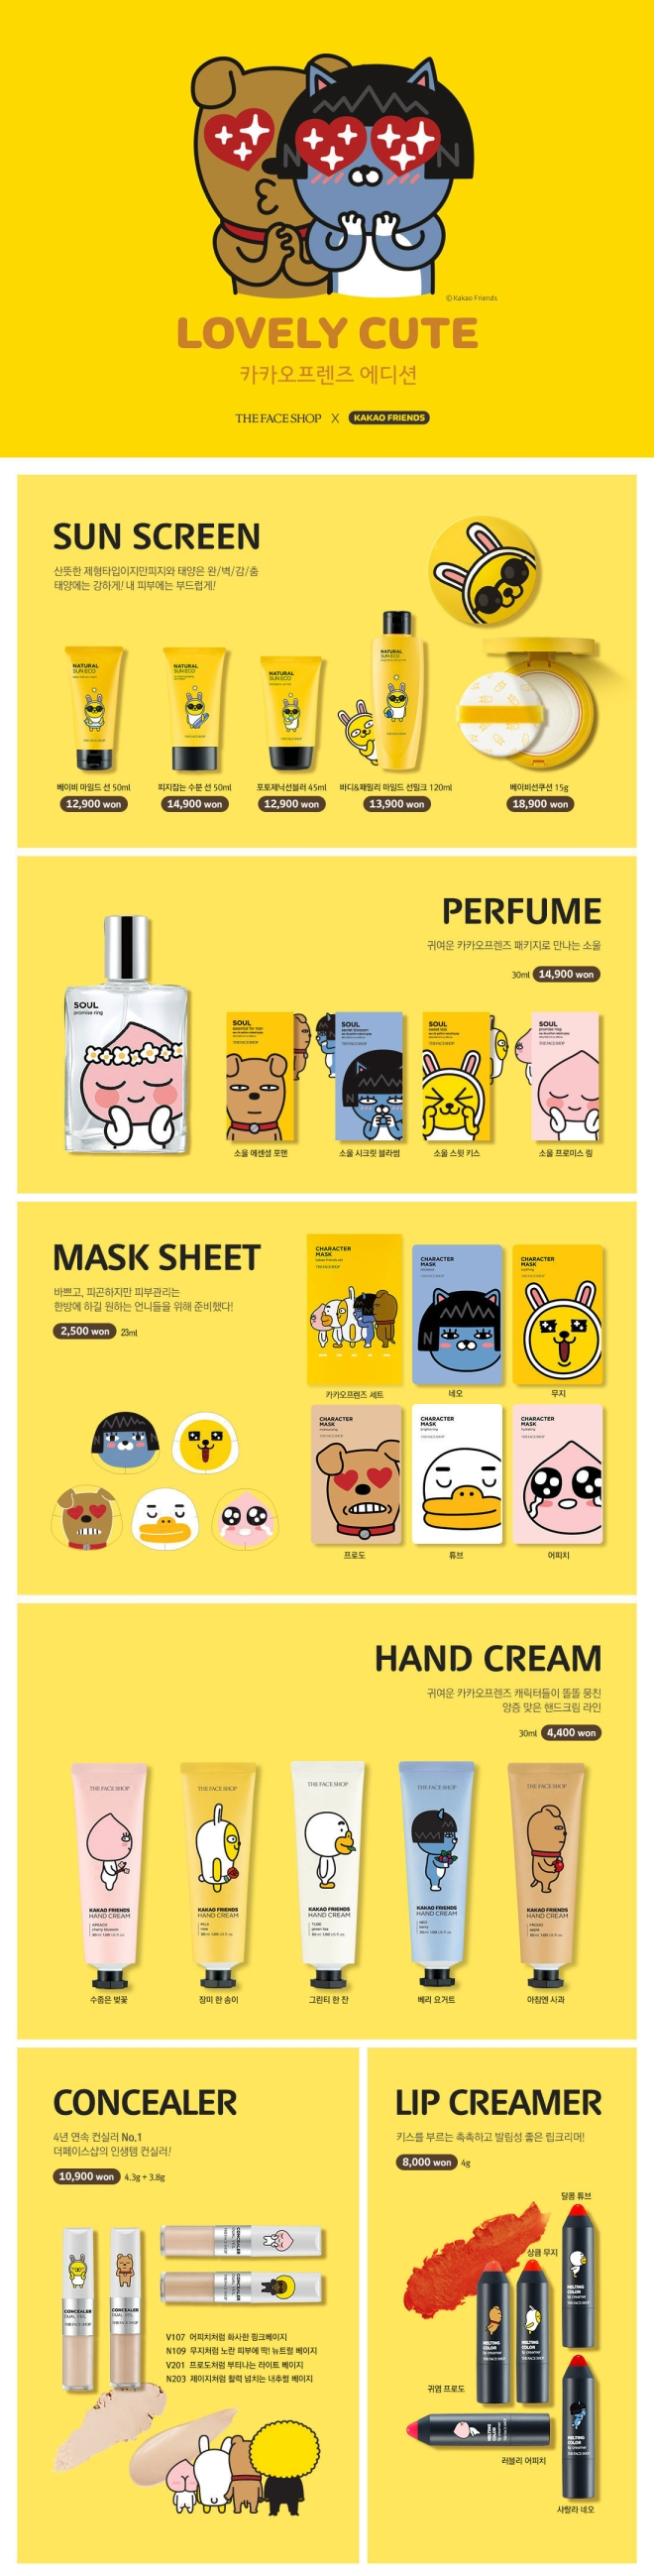 Thefaceshop x Kakao Friends